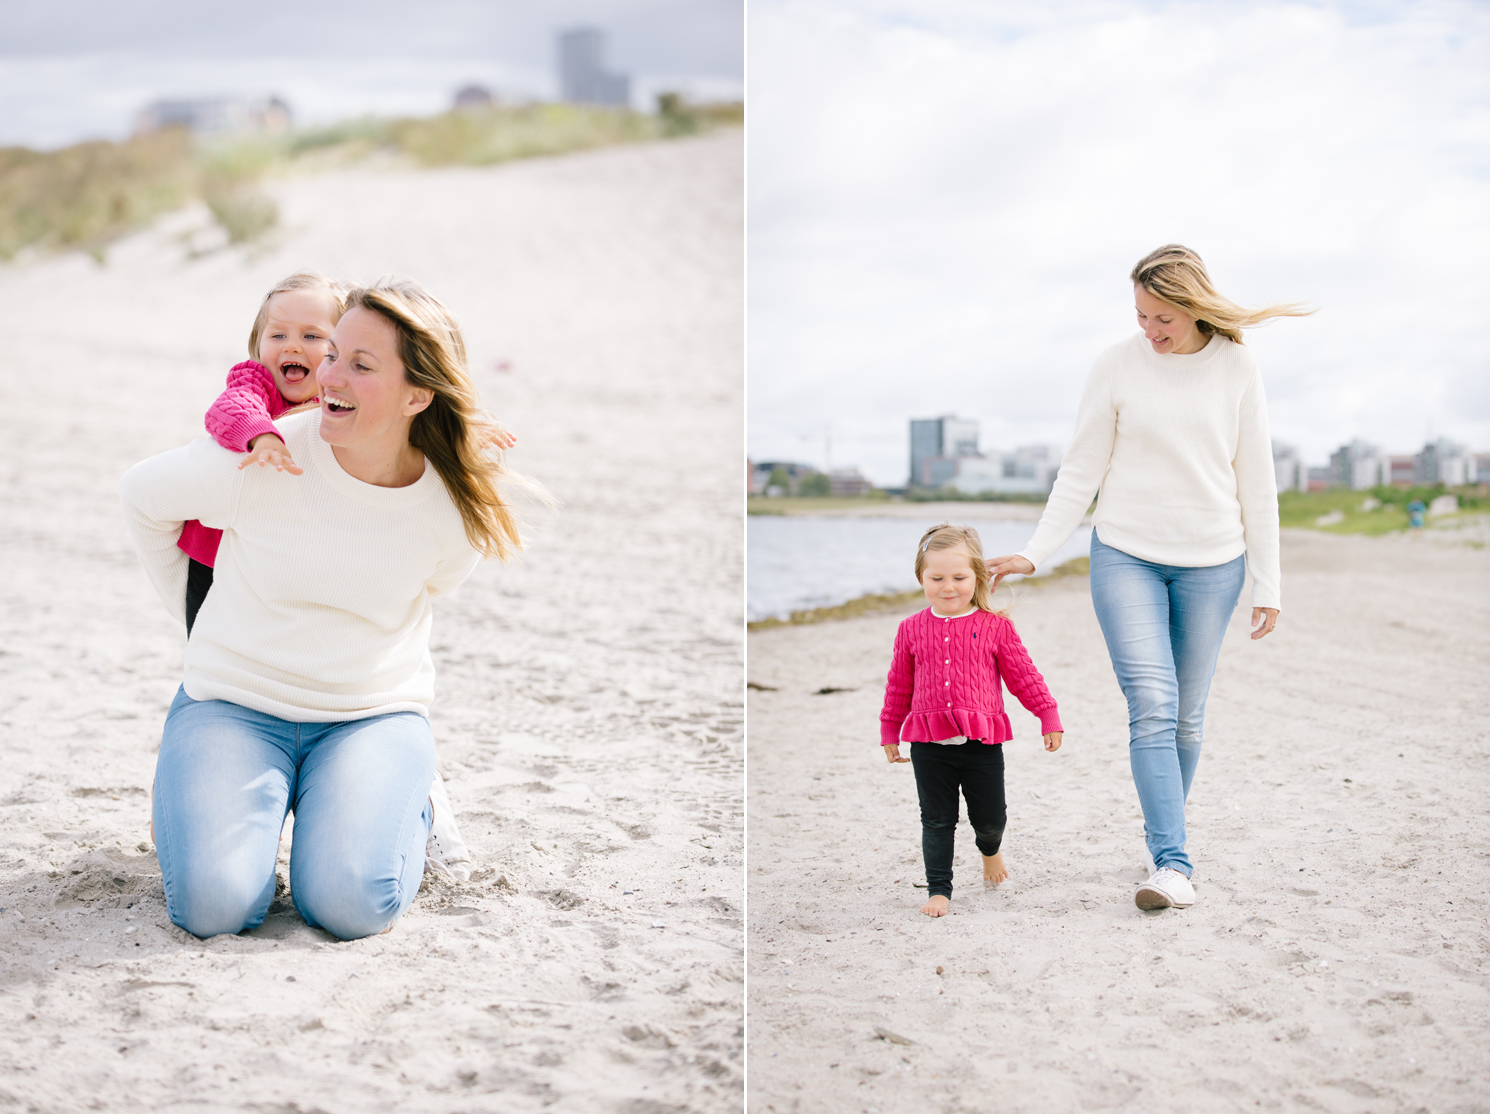 familjefotografering,-Beloved,-Malmo,-Maria-O-Photo,-6